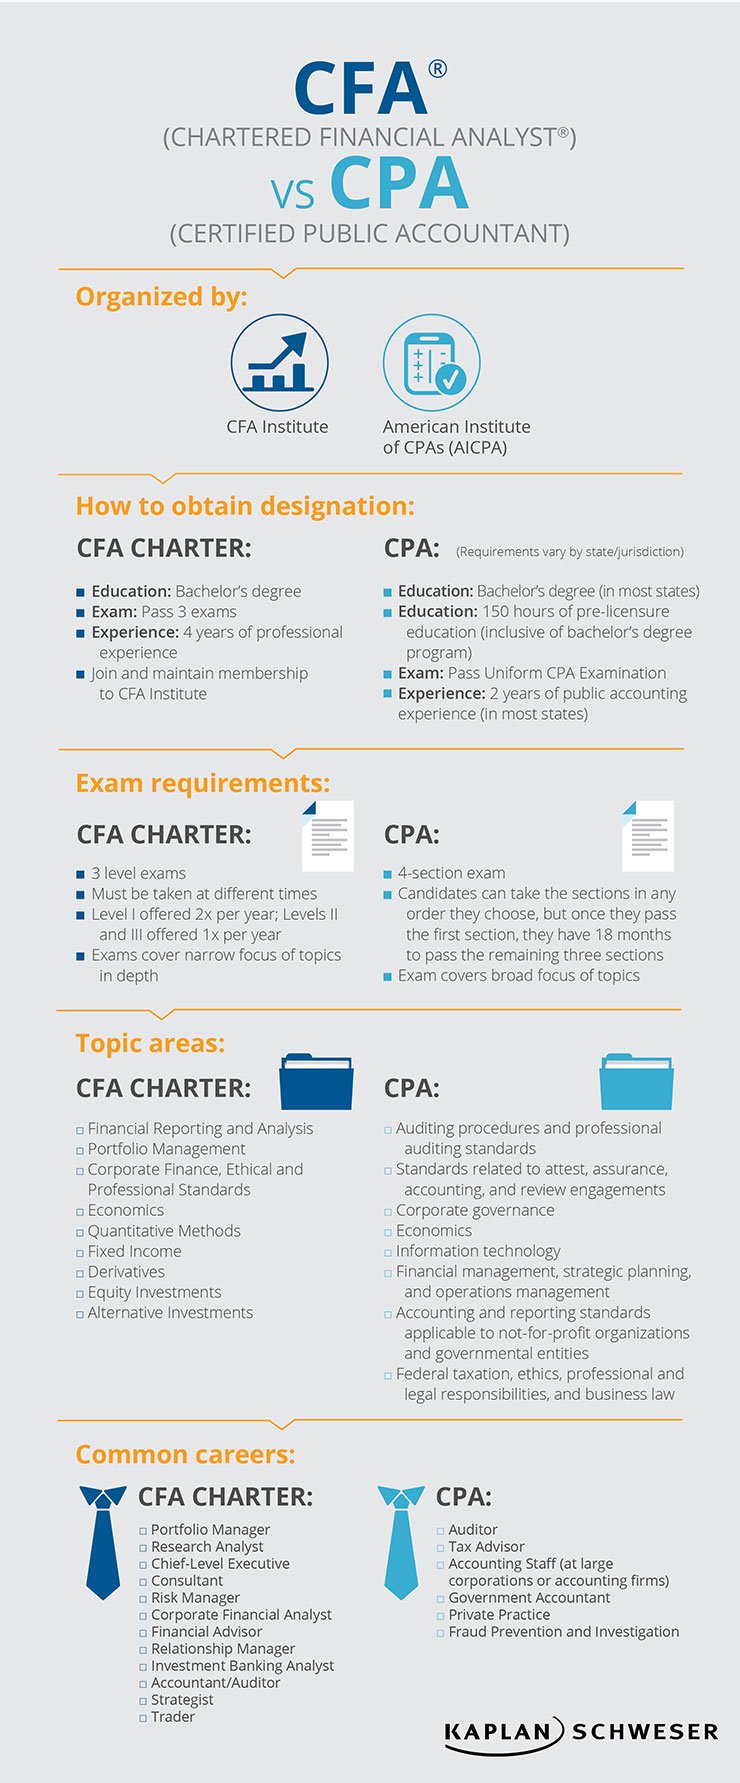 CFA vs CPA Designation Infographic